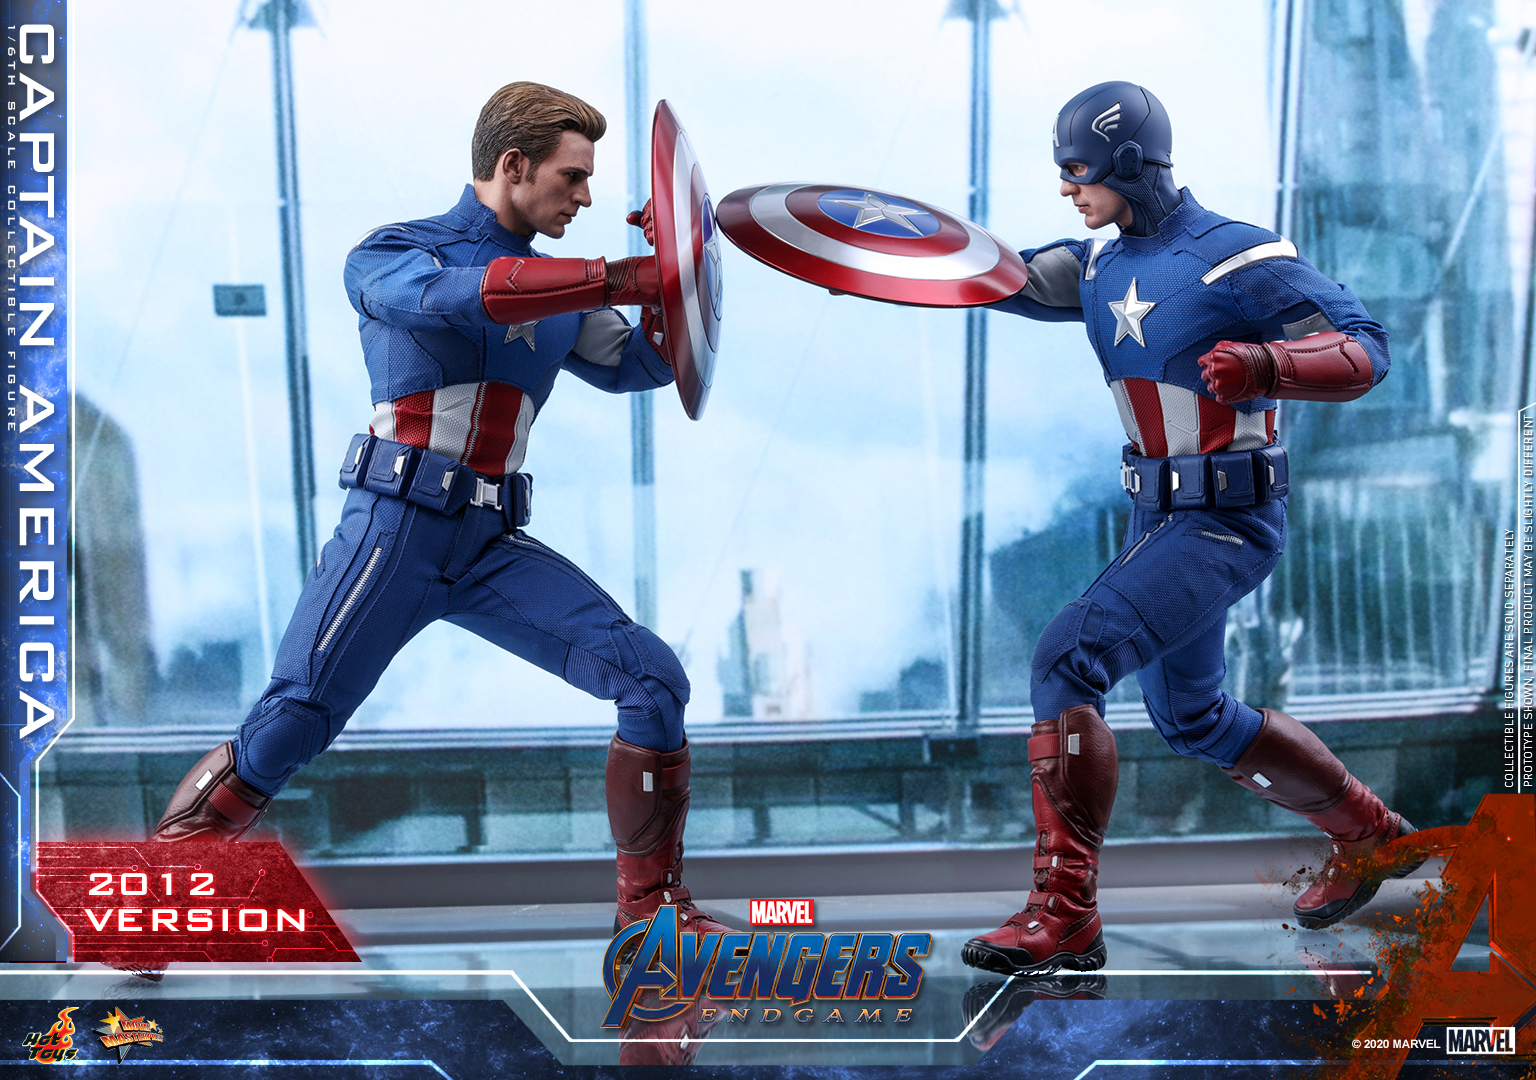 Hot Toys - A4 - Captain America (2012 Version) Collectible Figure_PR5